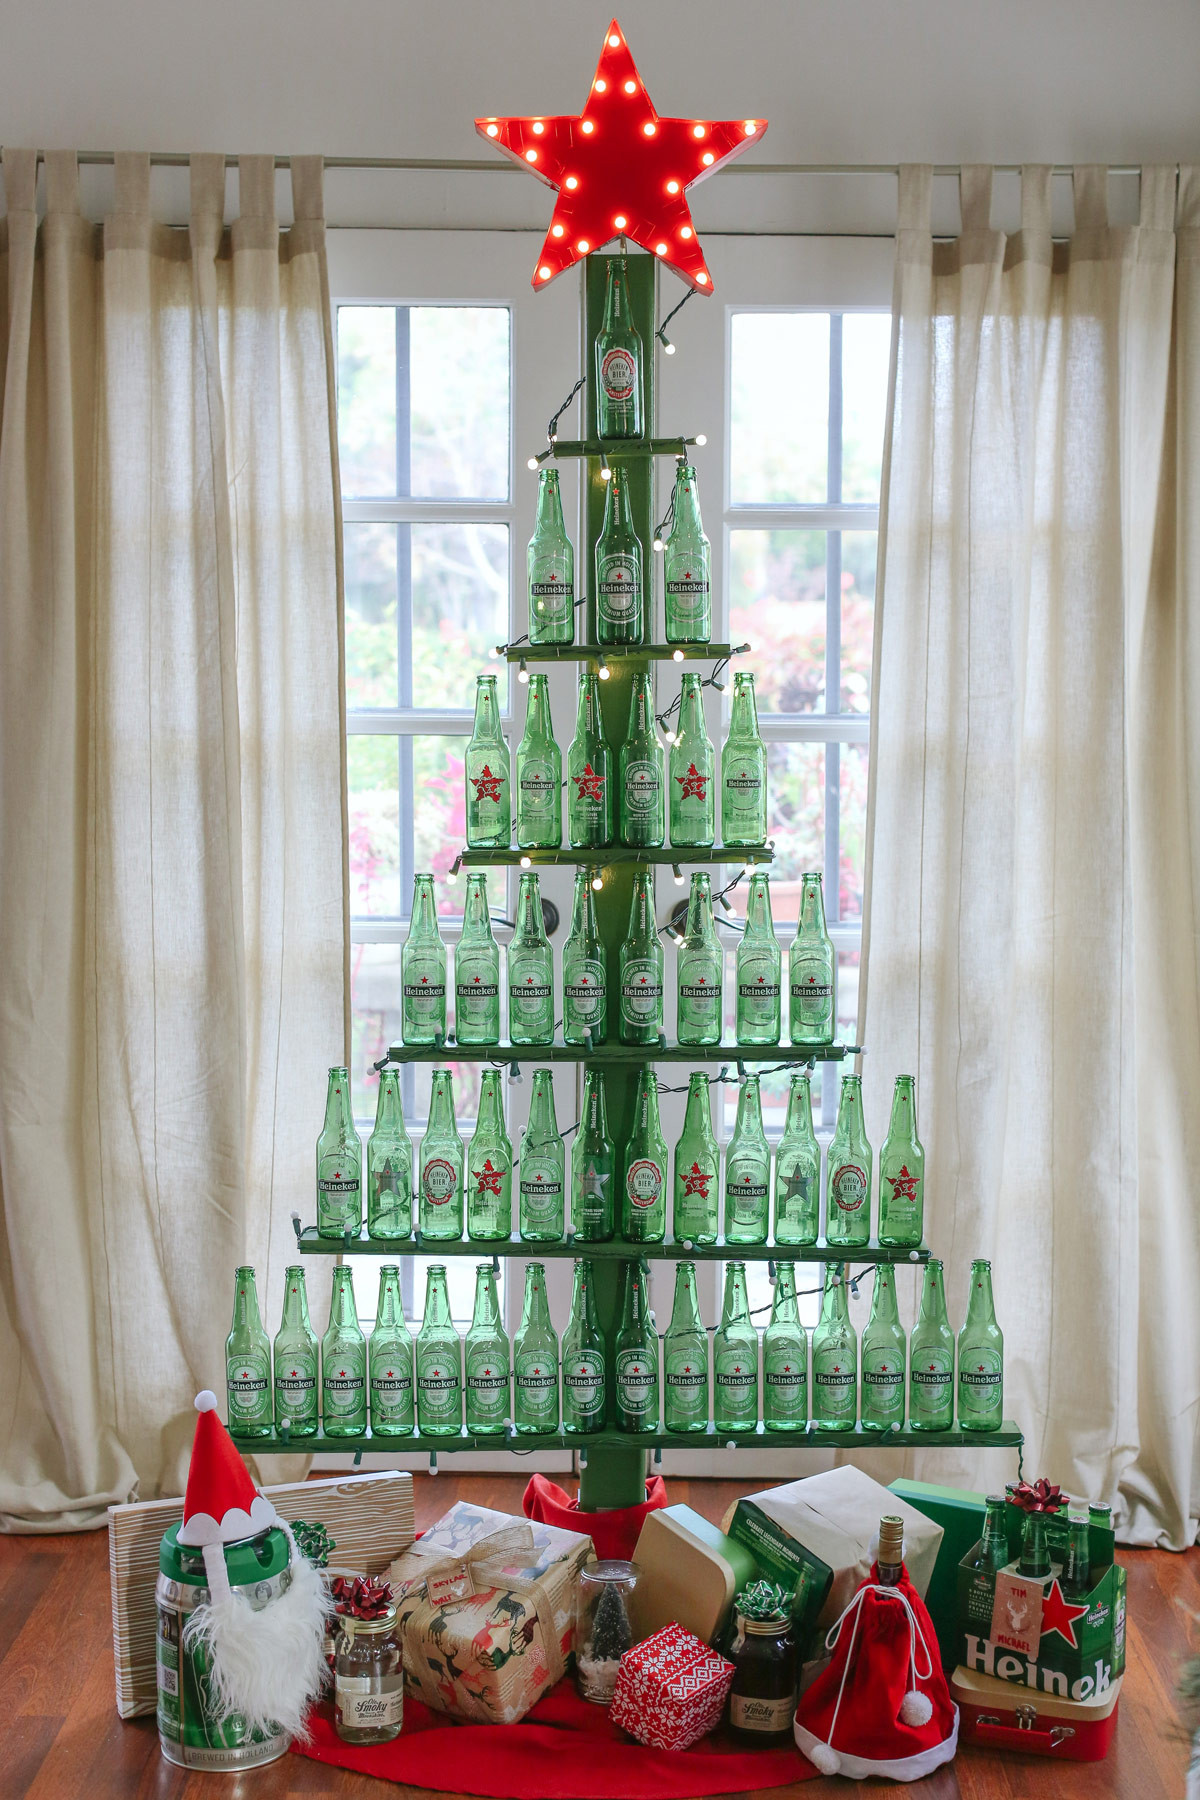 Best ideas about DIY Christmas Tree . Save or Pin DIY Beer Bottle Tree Evite Now.